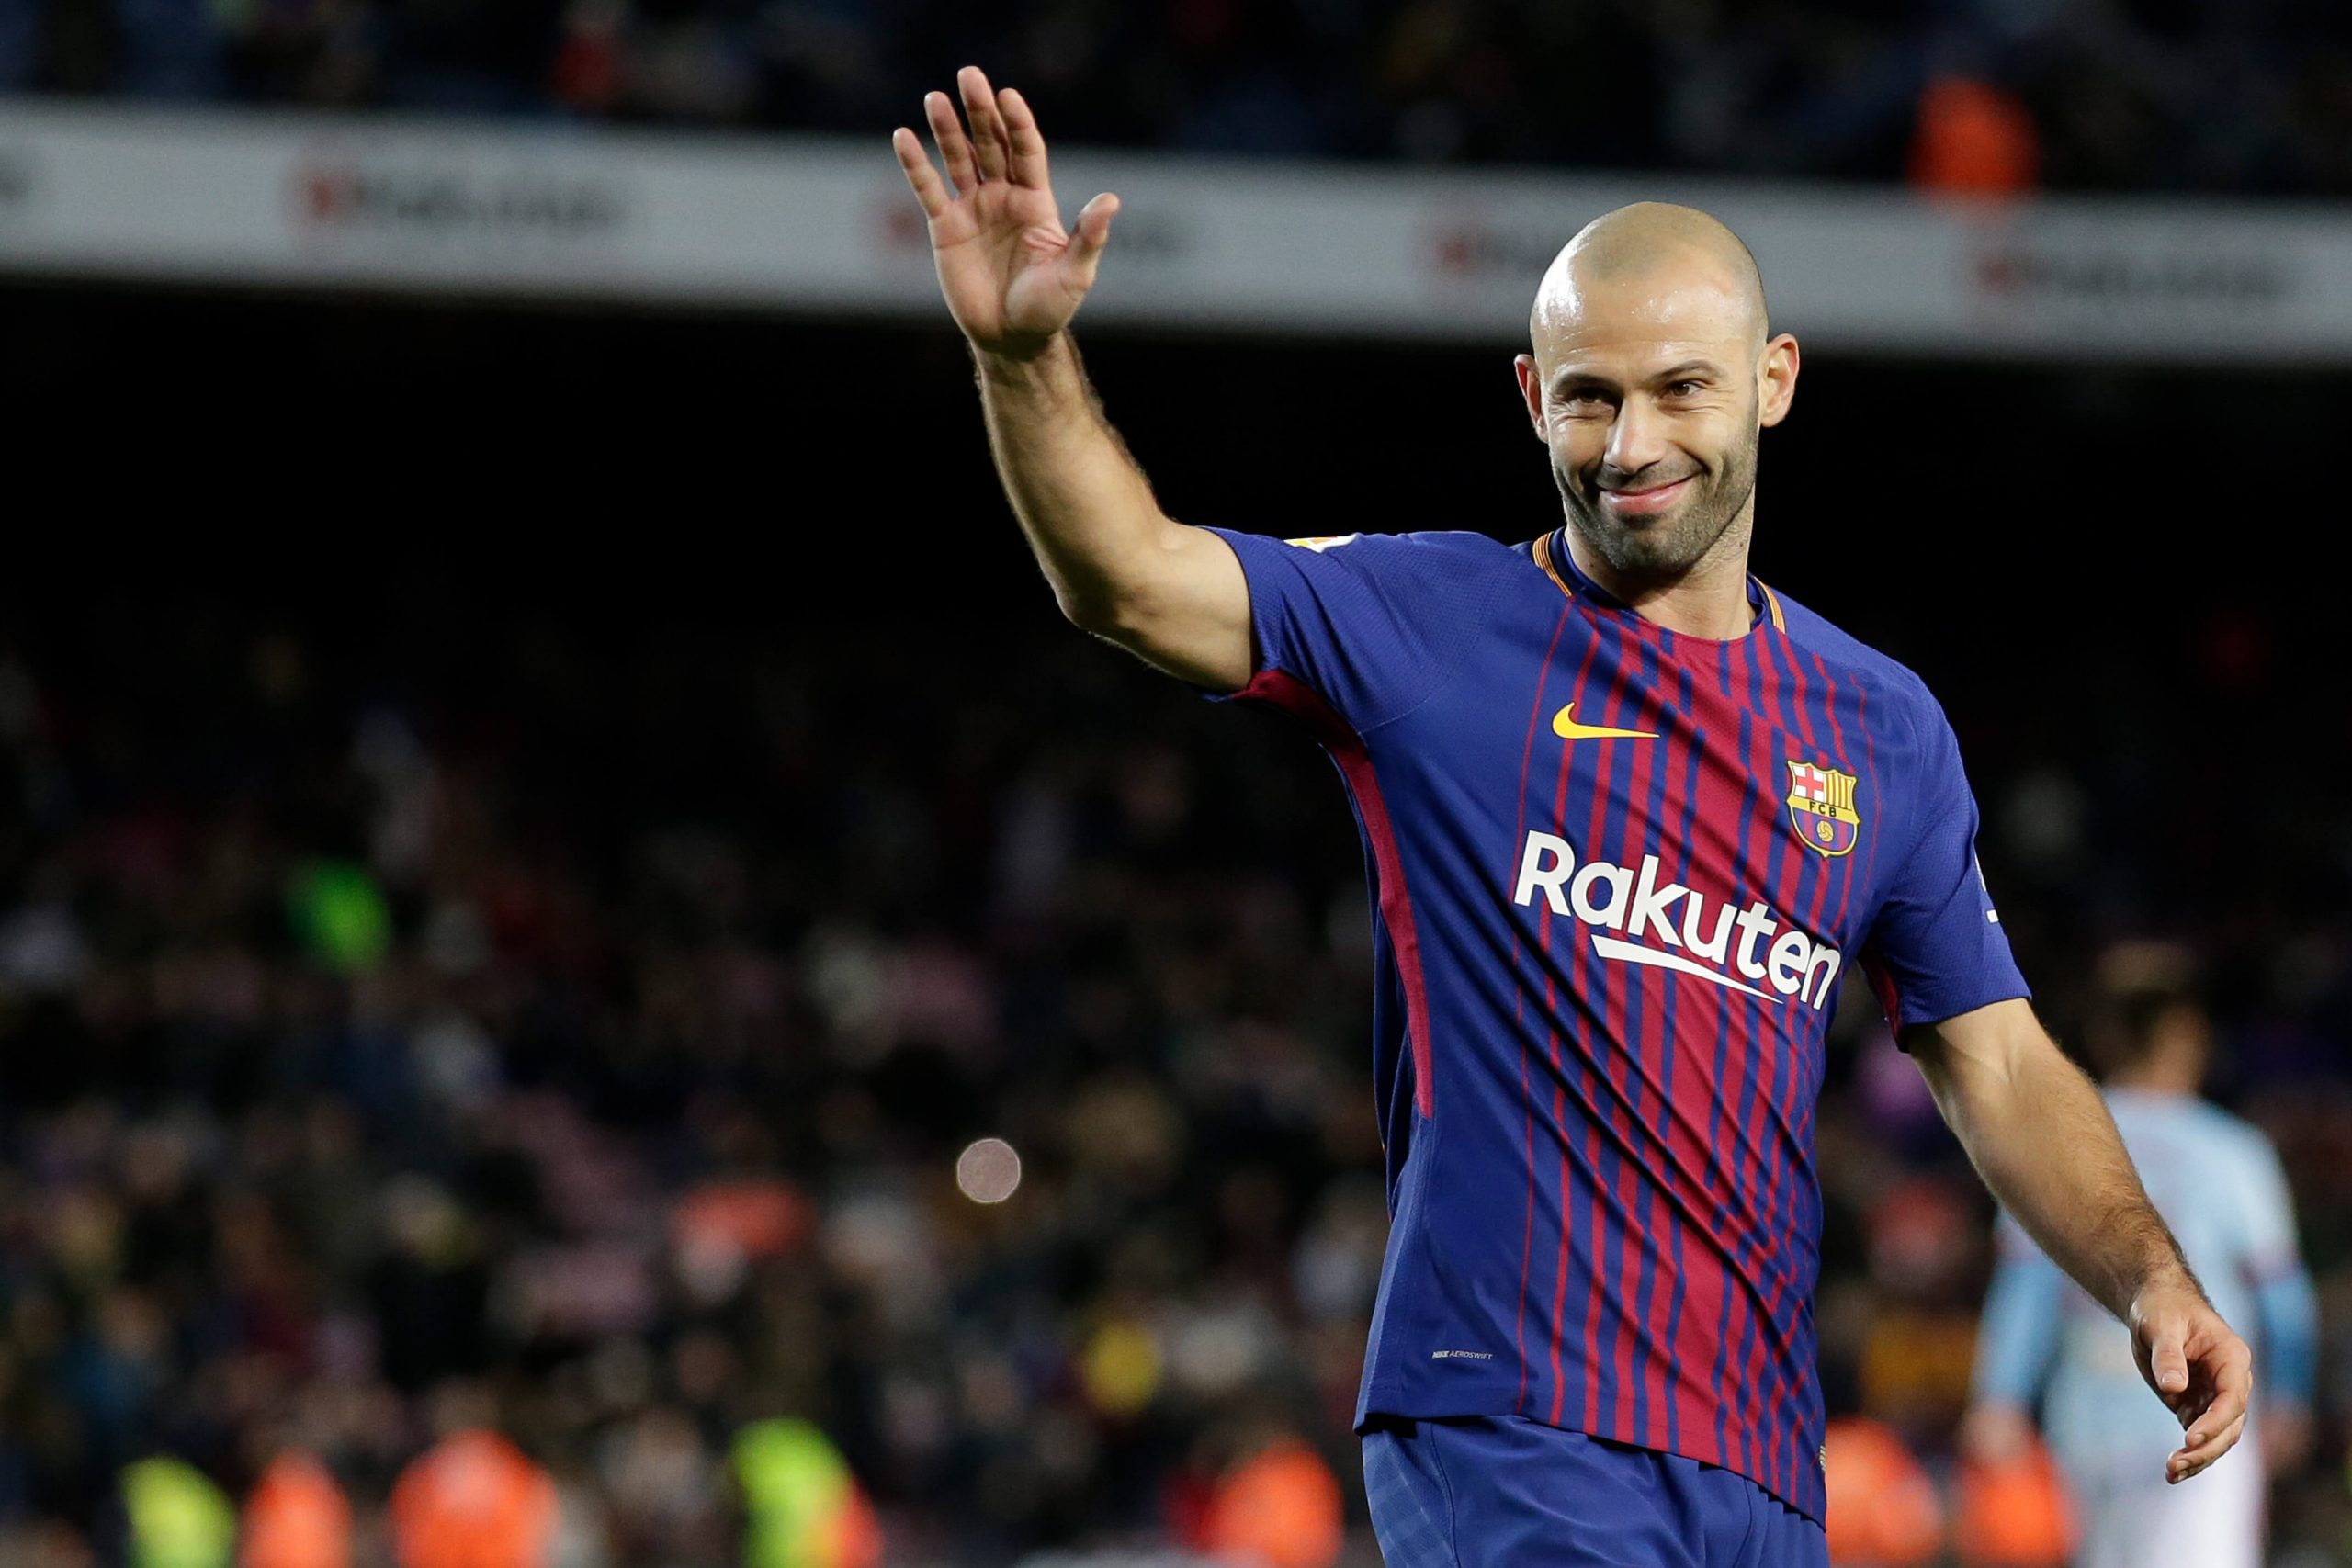 FC Barcelona confirms Javier Mascherano departure from the club